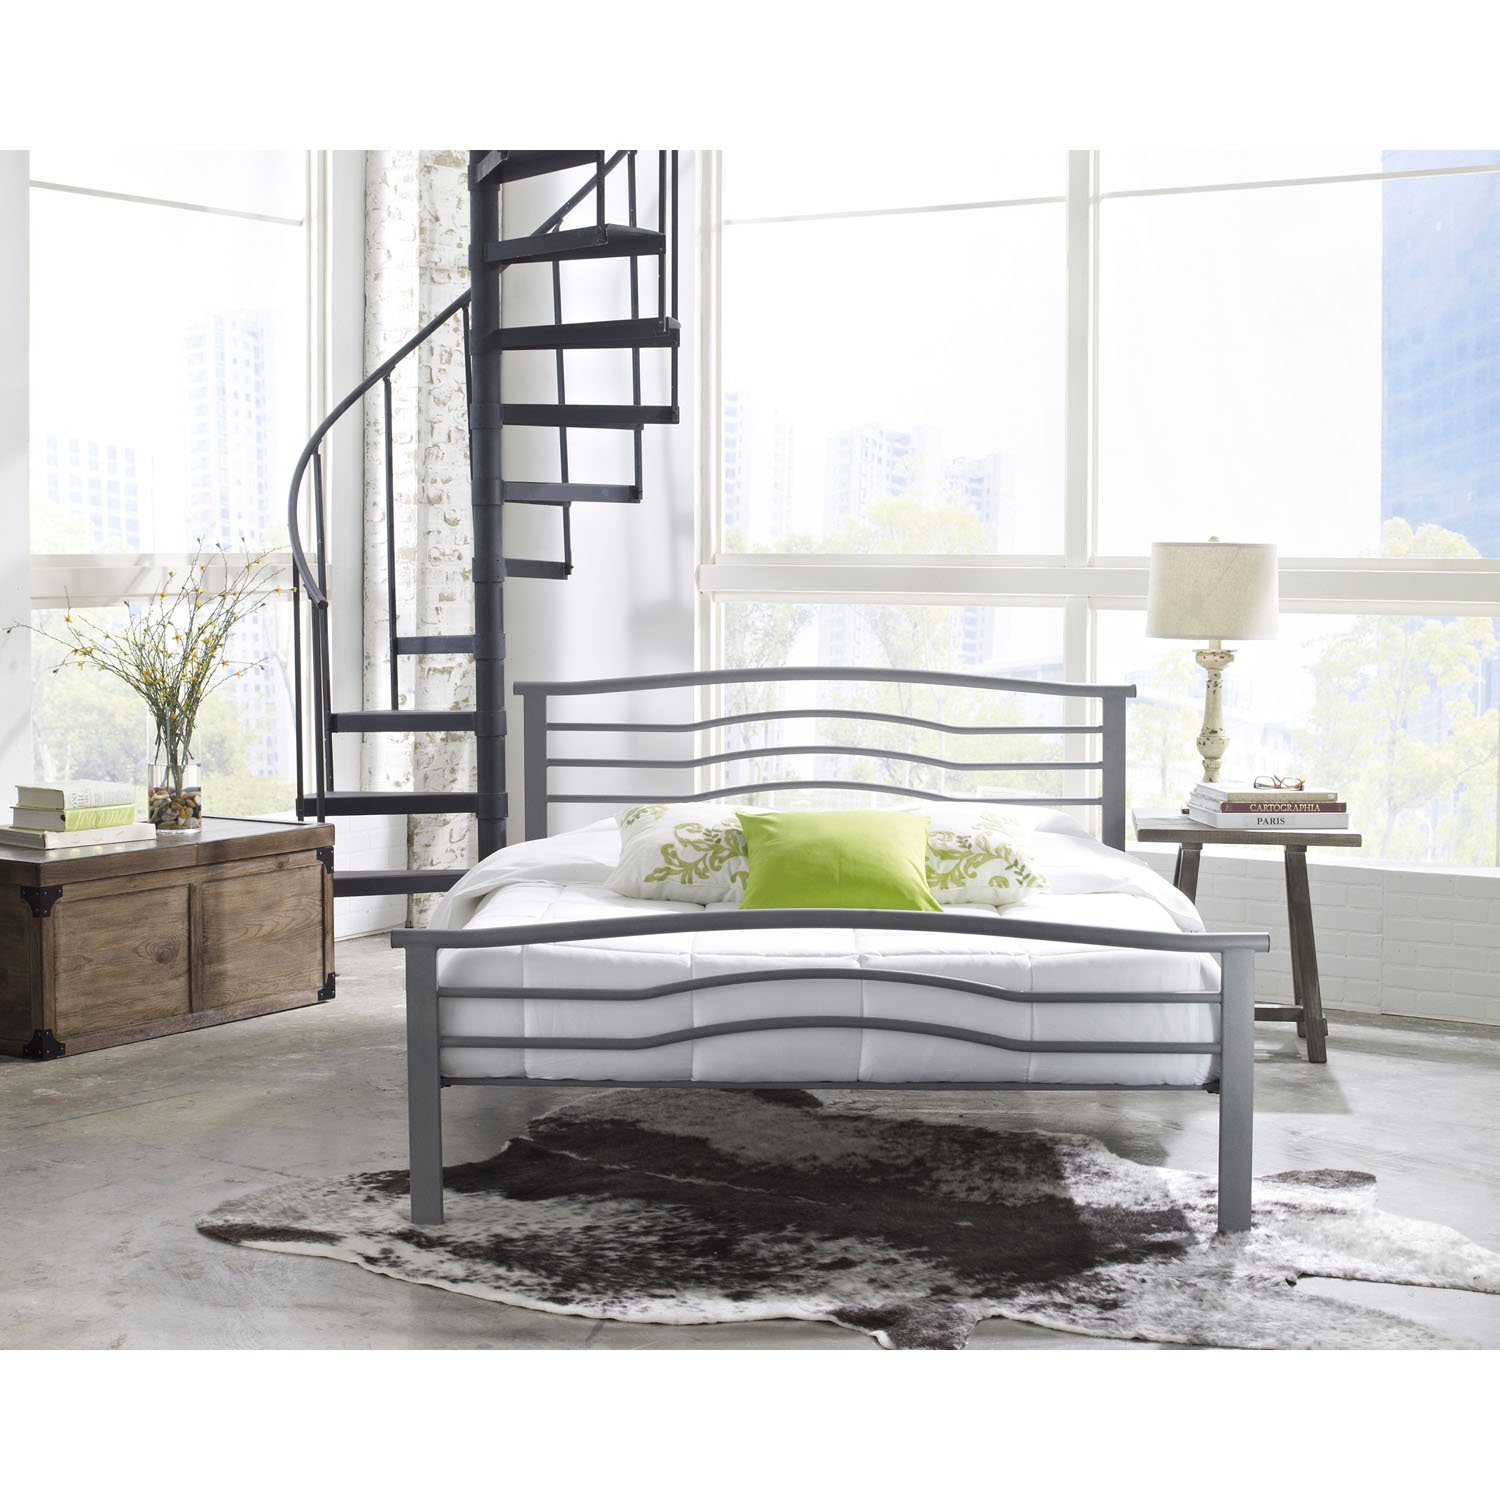 platform pdx szumowski bed furniture reviews rustic union metal wayfair frame